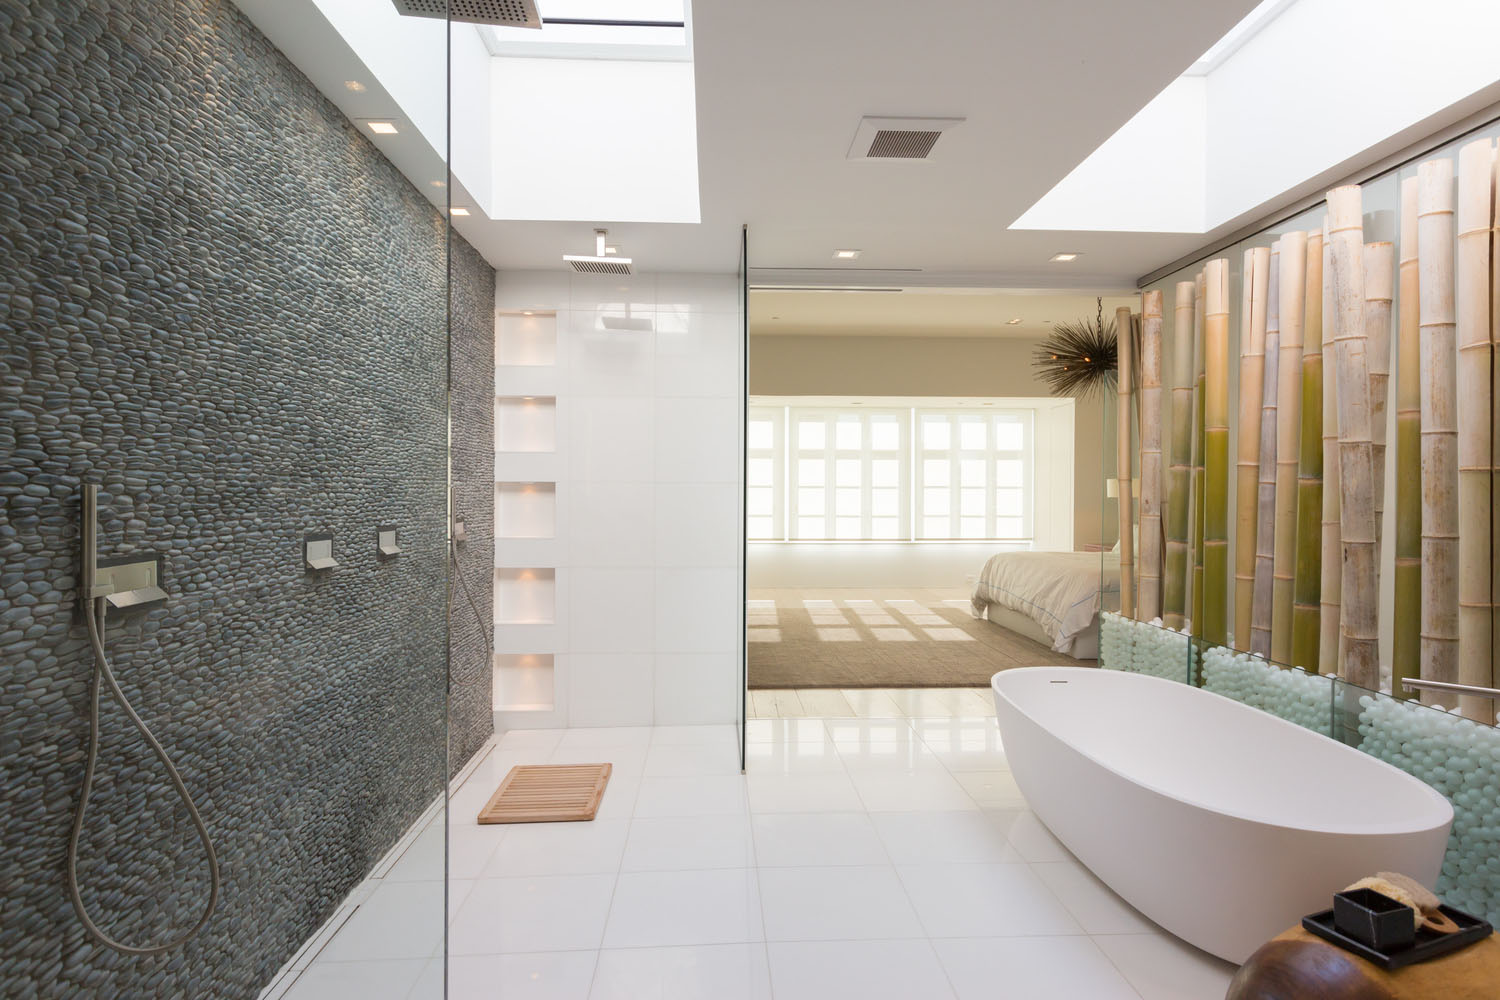 Bali-Inspired Bathroom